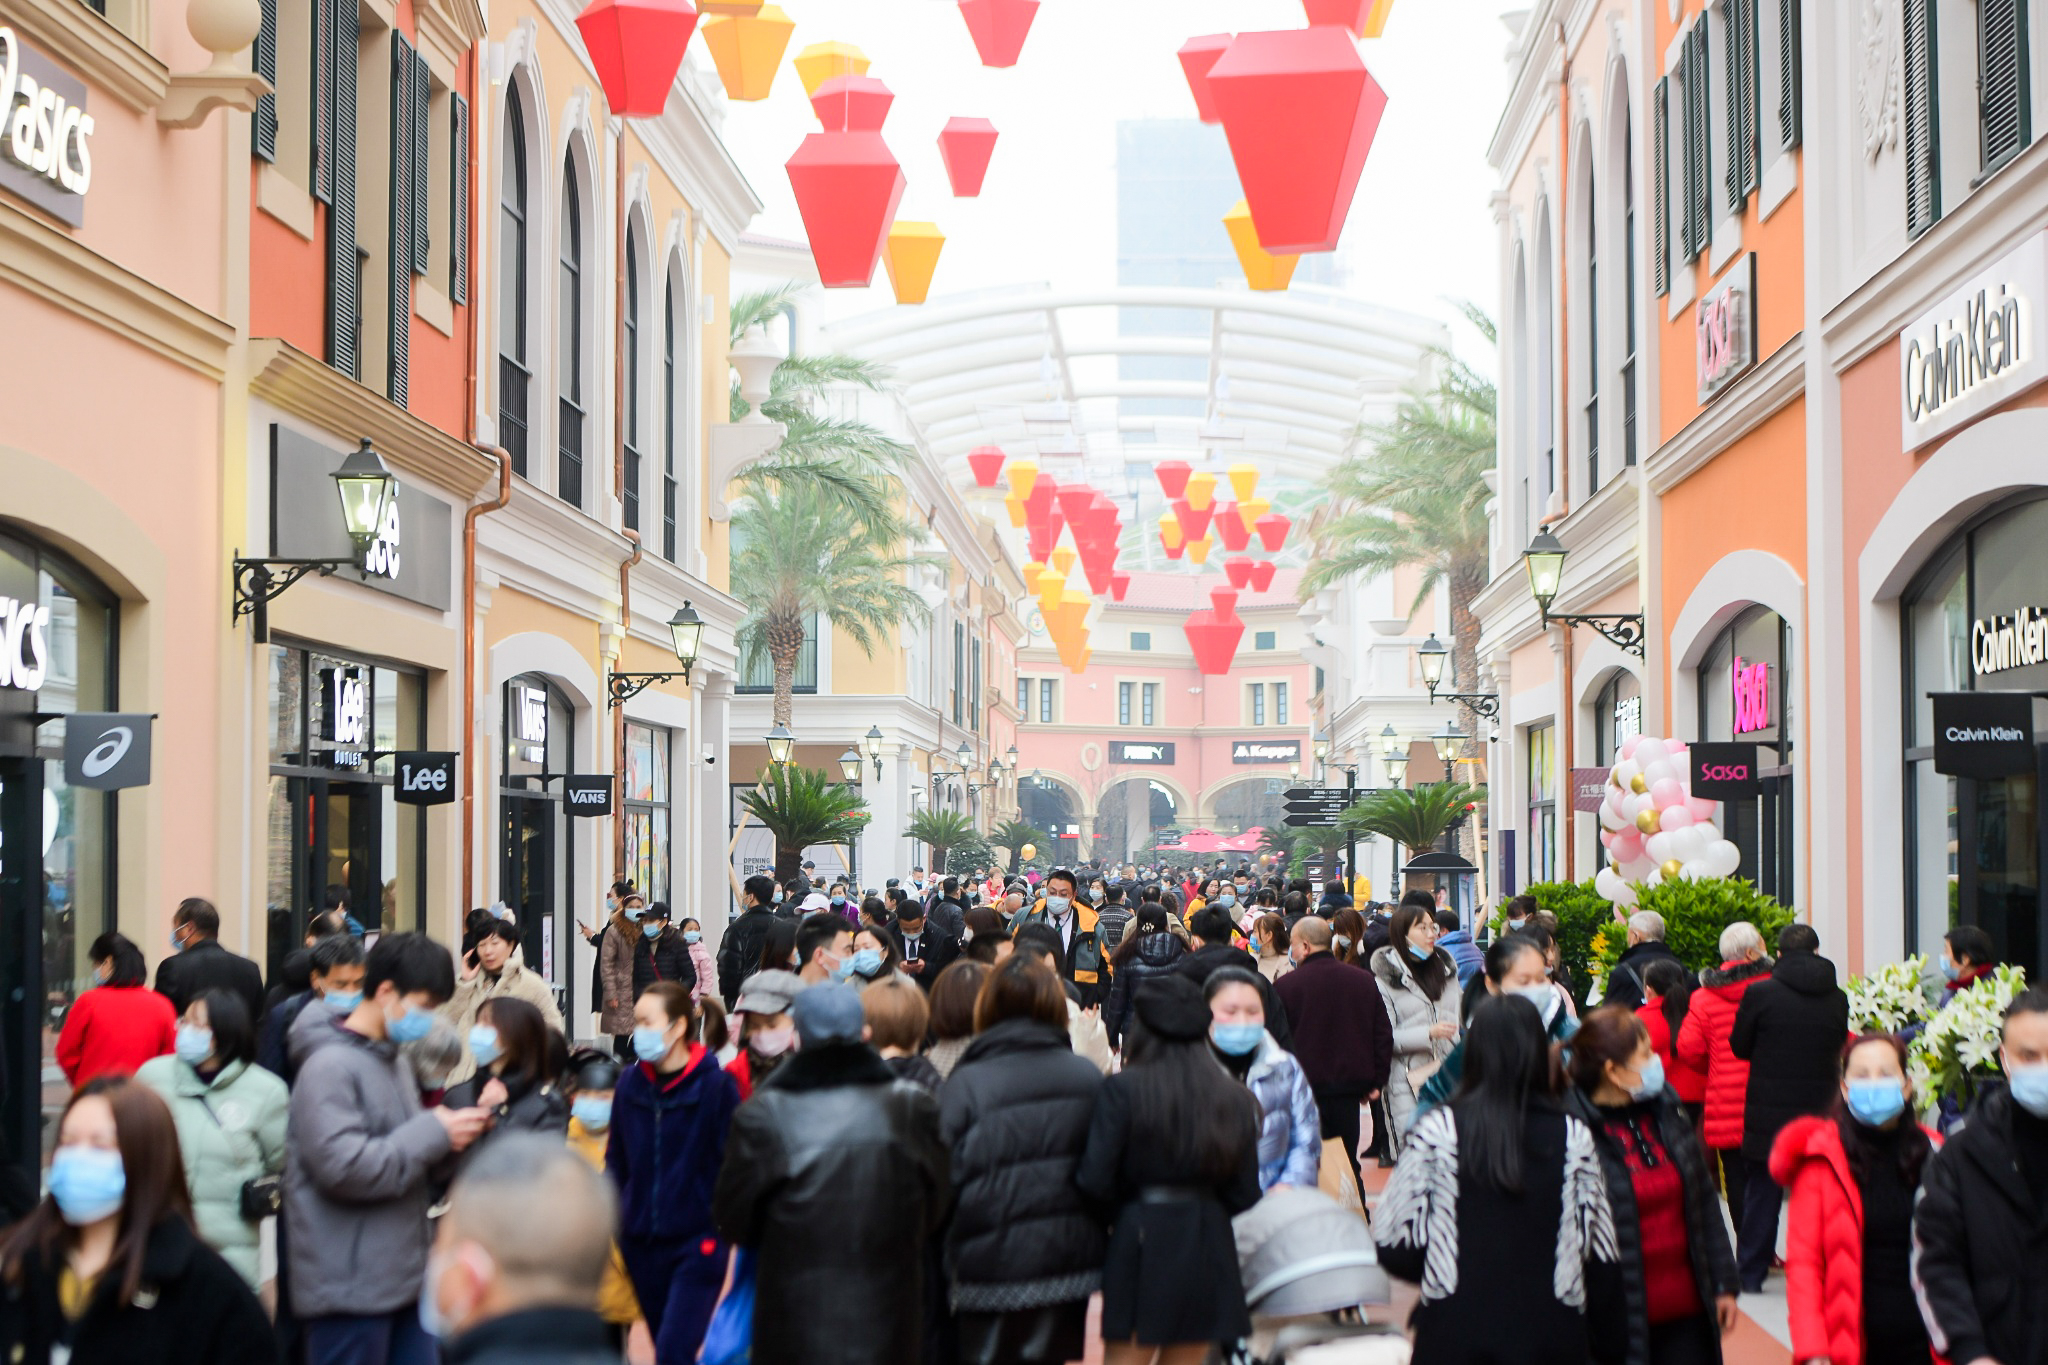 Luxury outlet Florentia Village's seventh outpost in Chongqing, saw a huge crowd of shoppers on the opening day.